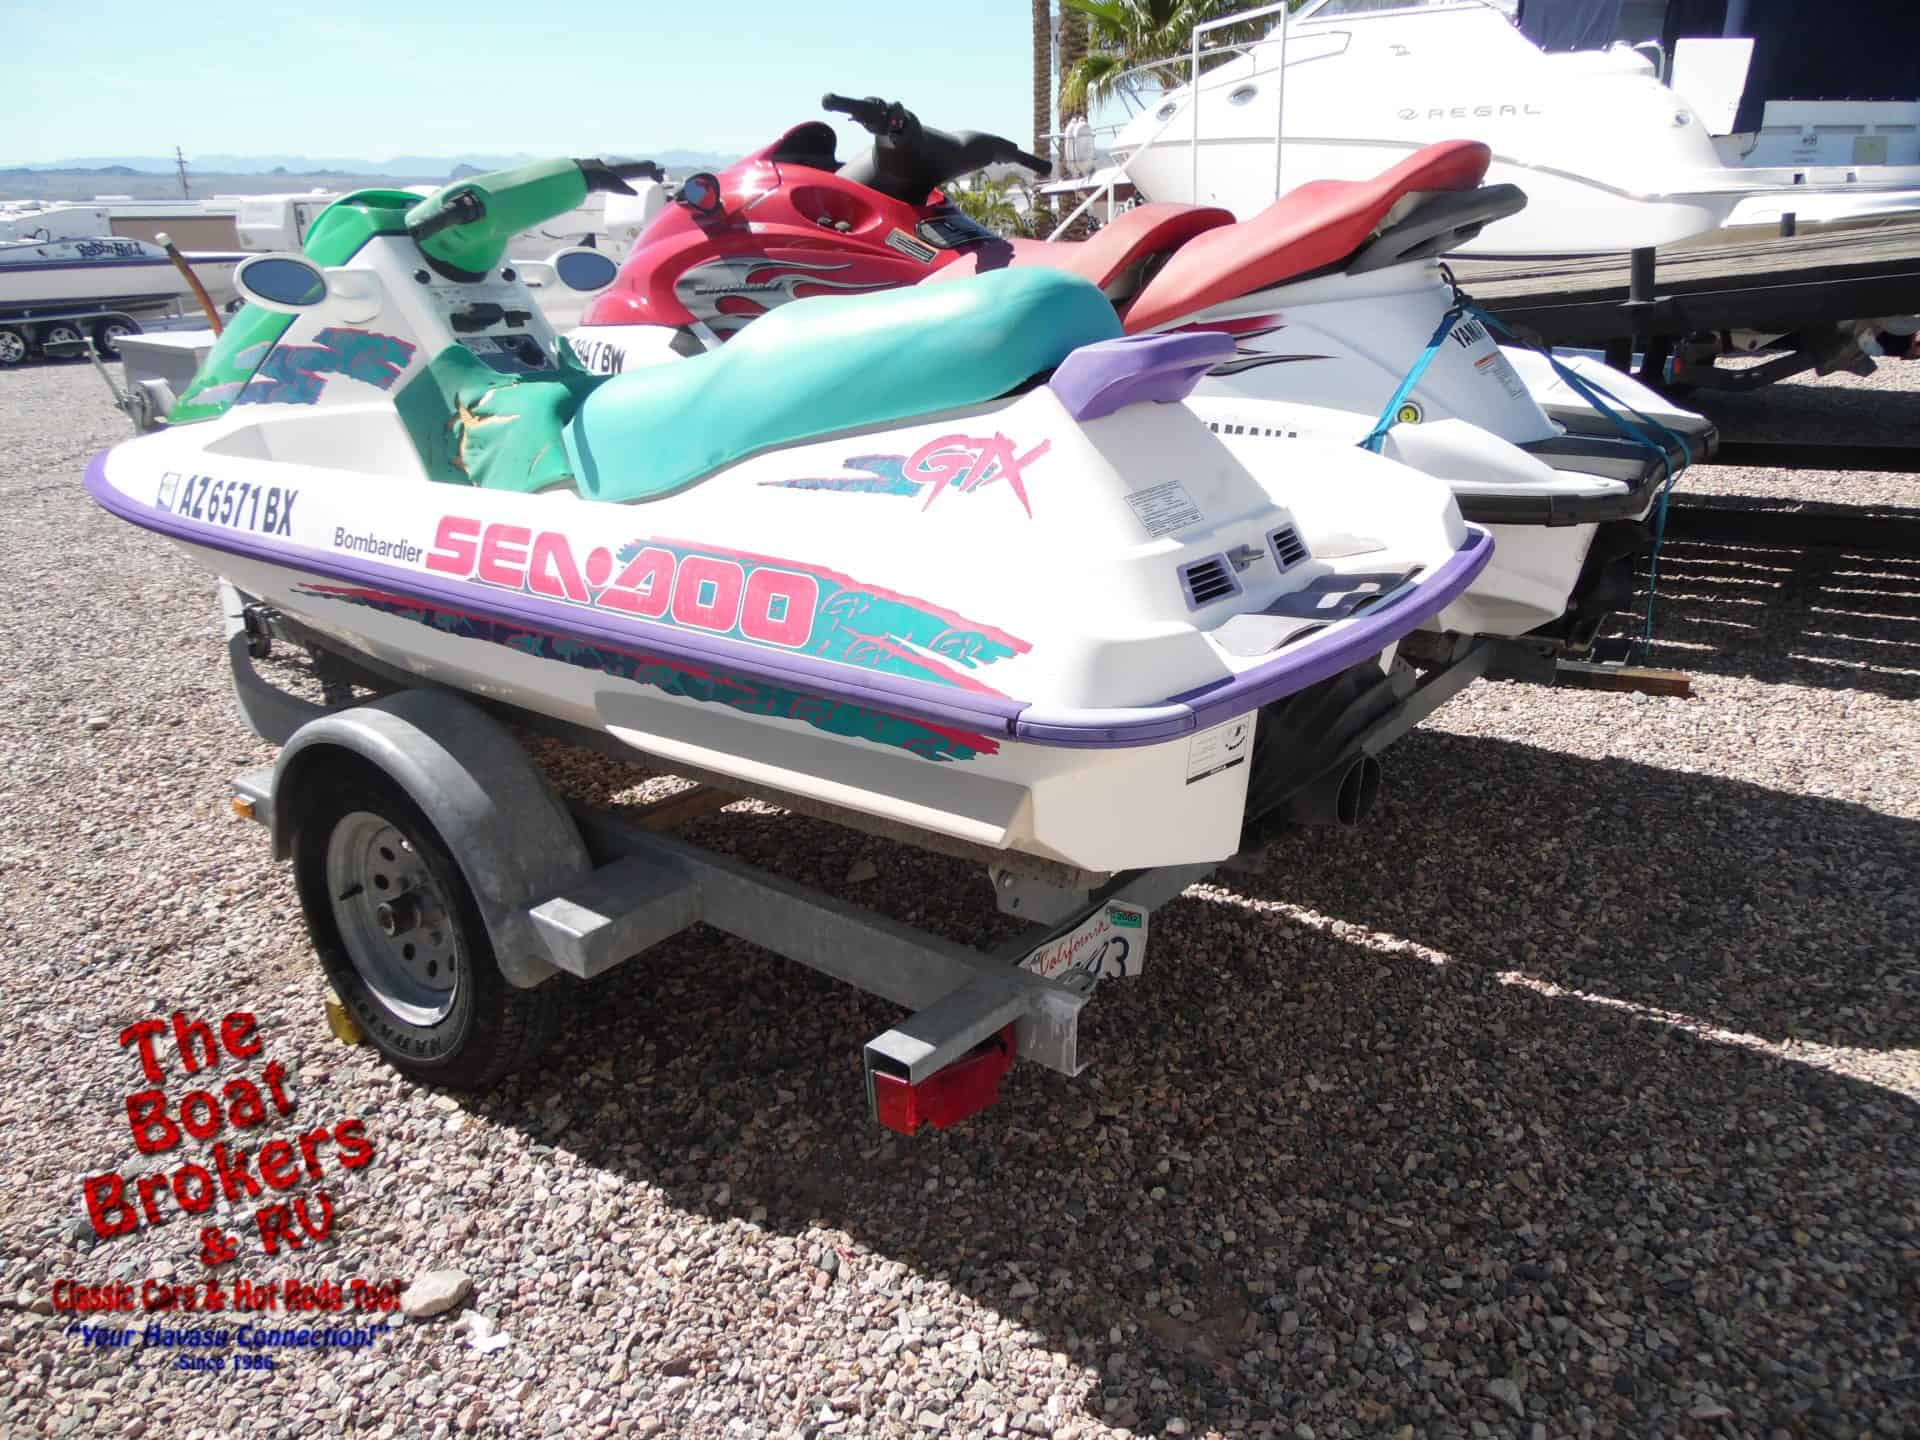 2004 yamaha wave 1995 bombardier seadoo price drop for Yamaha wave runner price